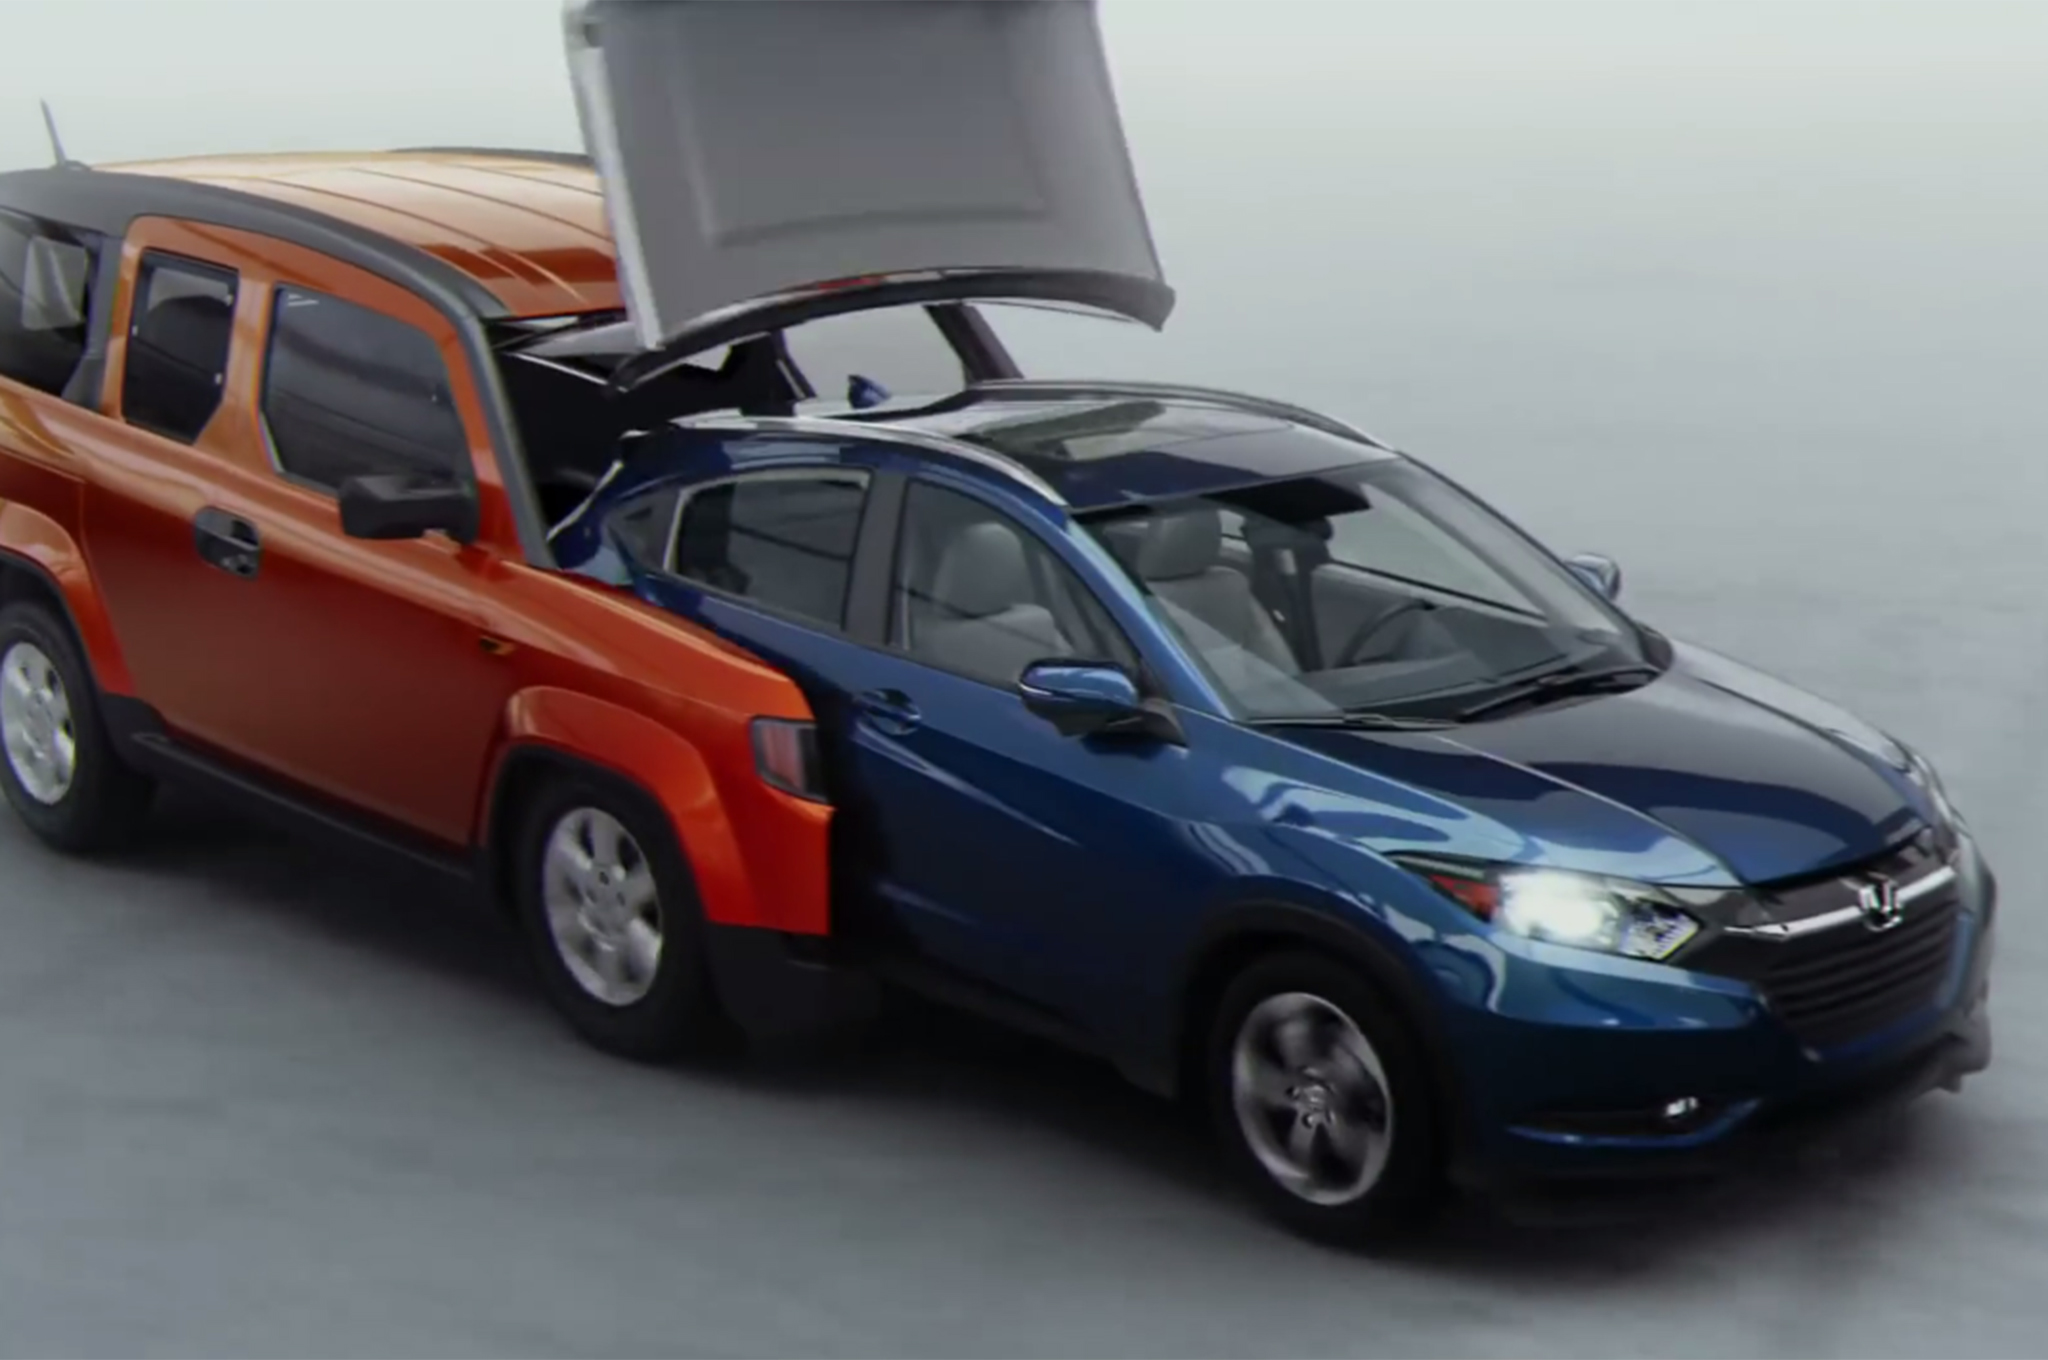 2016 Honda Hr V Ad Features 7 Hondas From The Past Motor Trend 2007 Ford Explorer Fuse Box Location